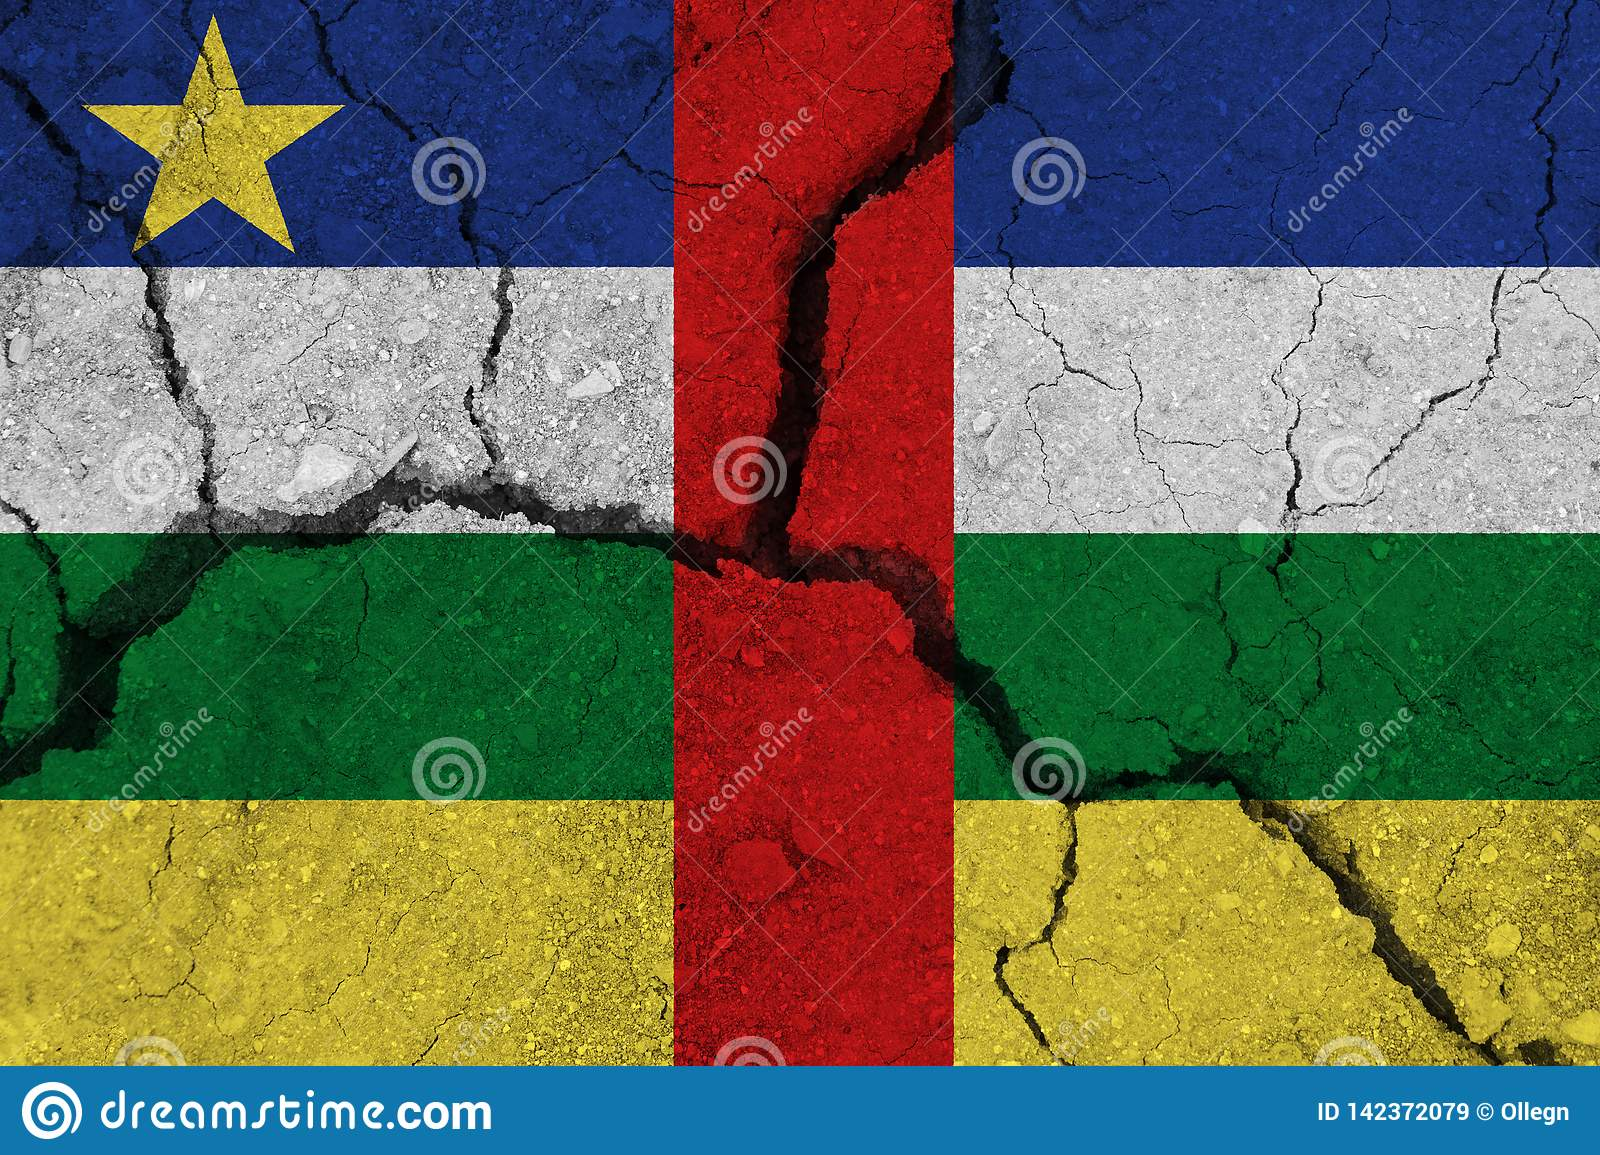 Central African Republic flag on the cracked earth